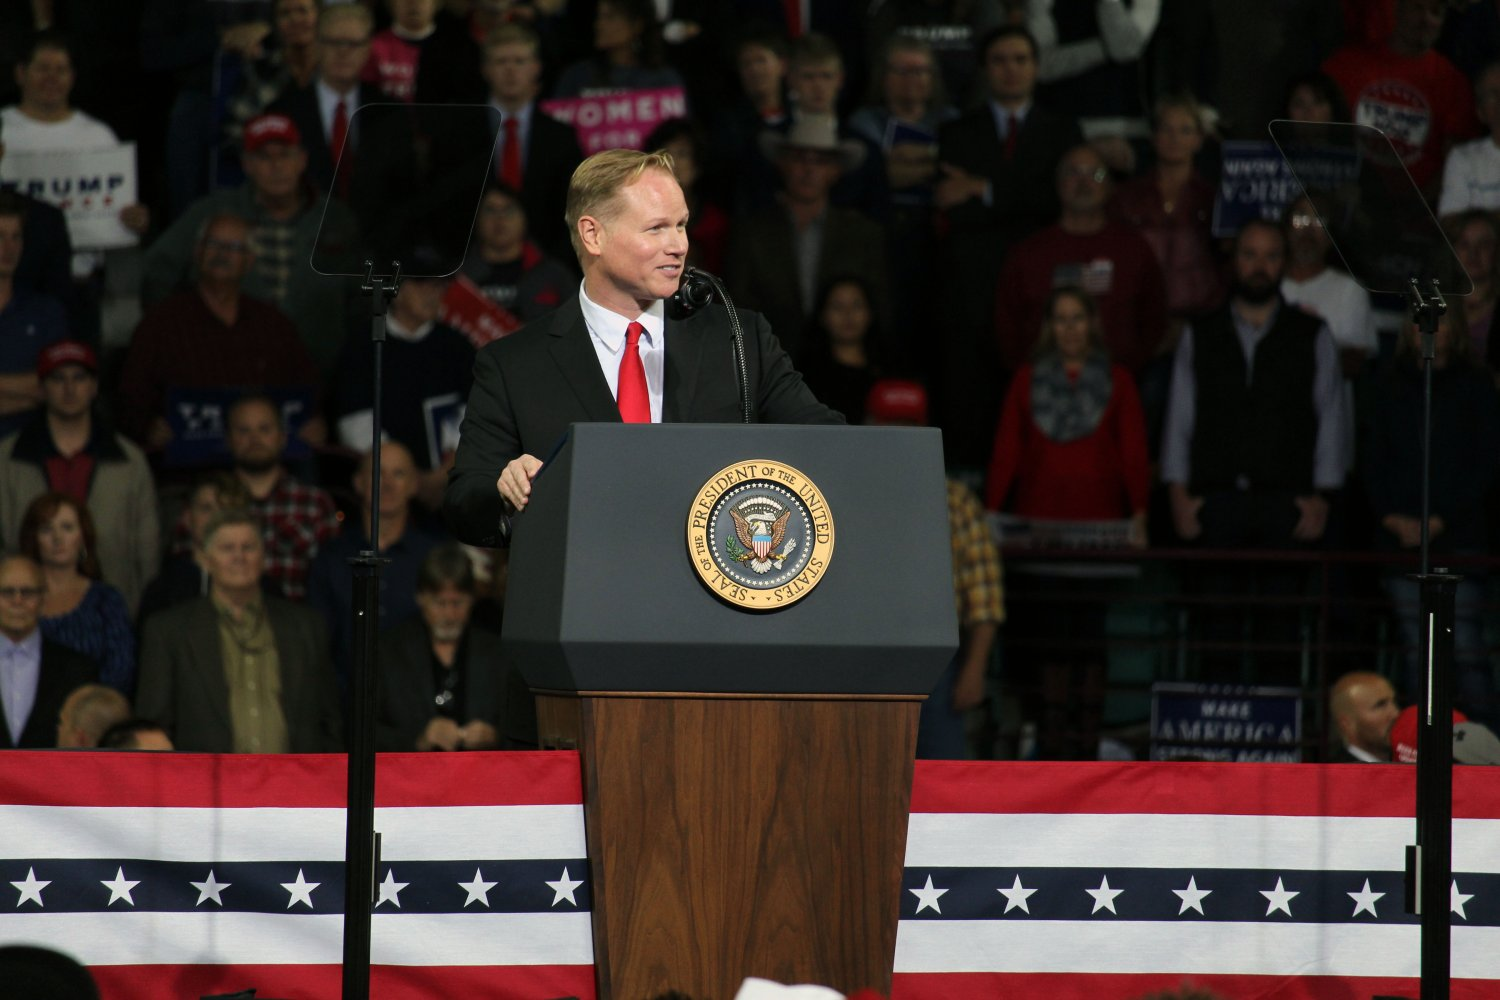 Candidate Steve Watkins addresses the audience at President Donald Trump's campaign rally in Topeka, Kansas on Oct. 6. Watkins appeared as an endorsed candidate for Senate and spoke about the importance of voting in primary elections as well as addressing his opponent's campaigns.